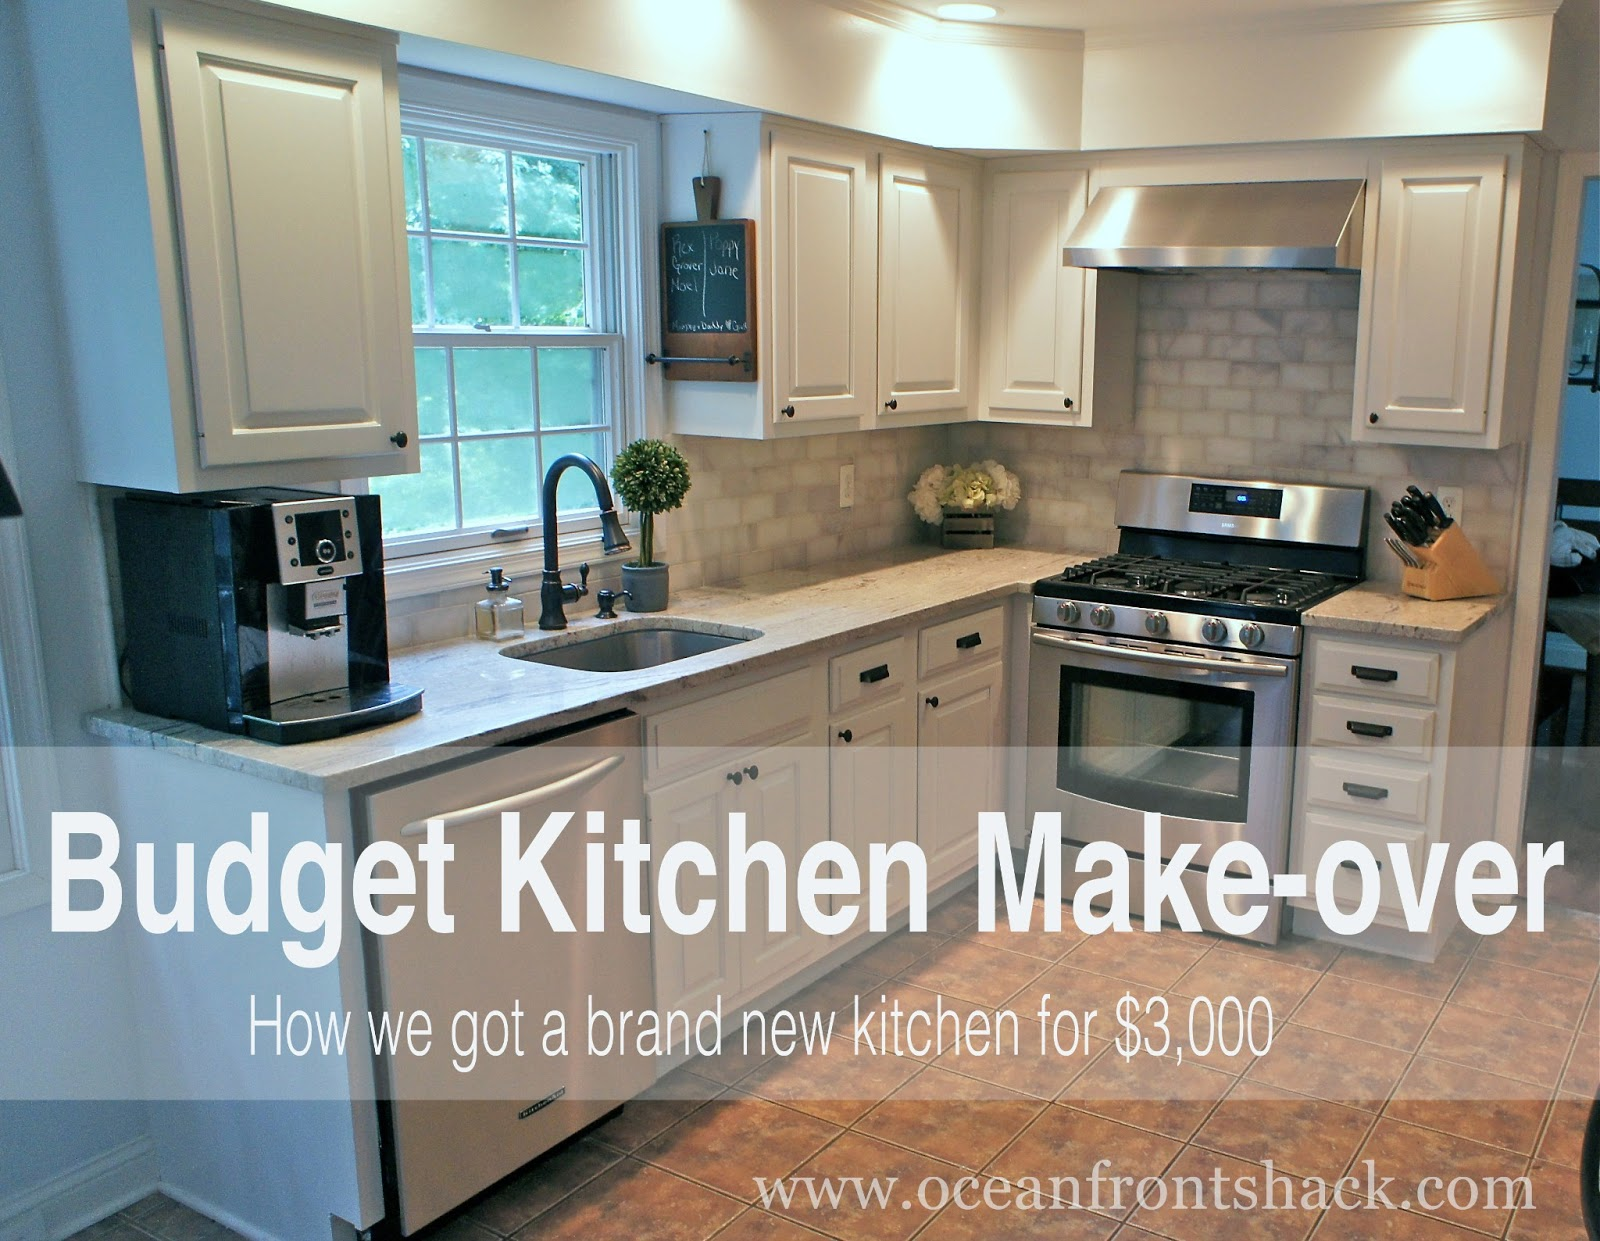 Budget kitchen makeover ocean front shack for Best kitchen renovation ideas